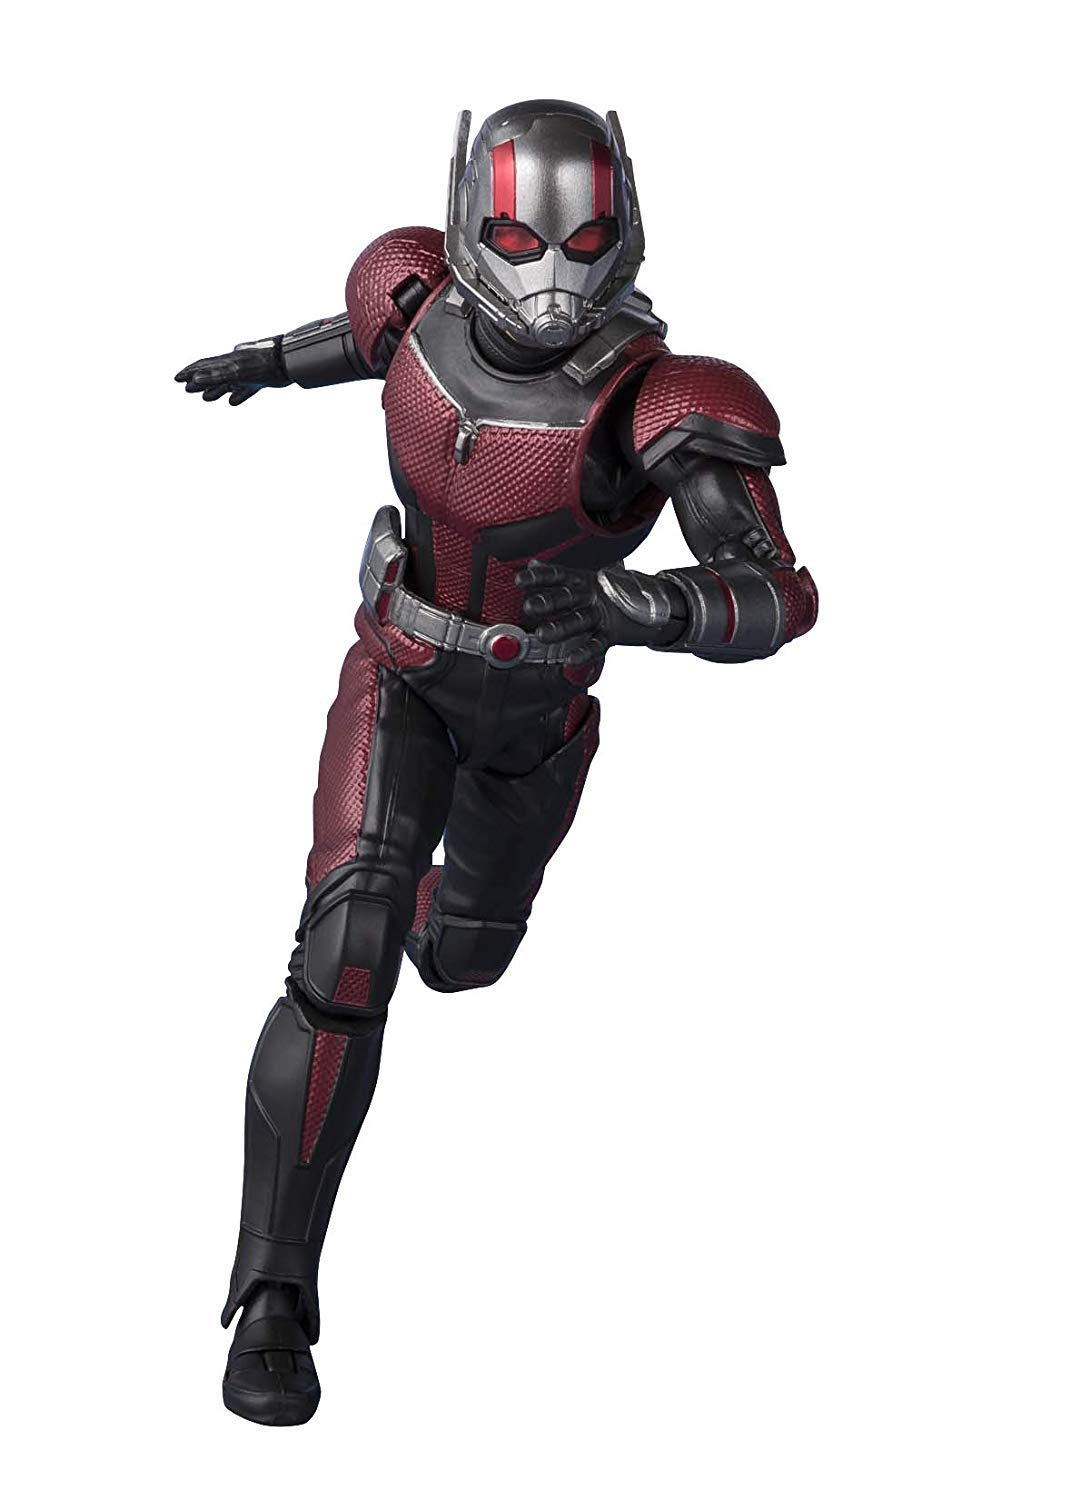 Bandai S. H. Figuarts Ant-Man Avengers/End Game